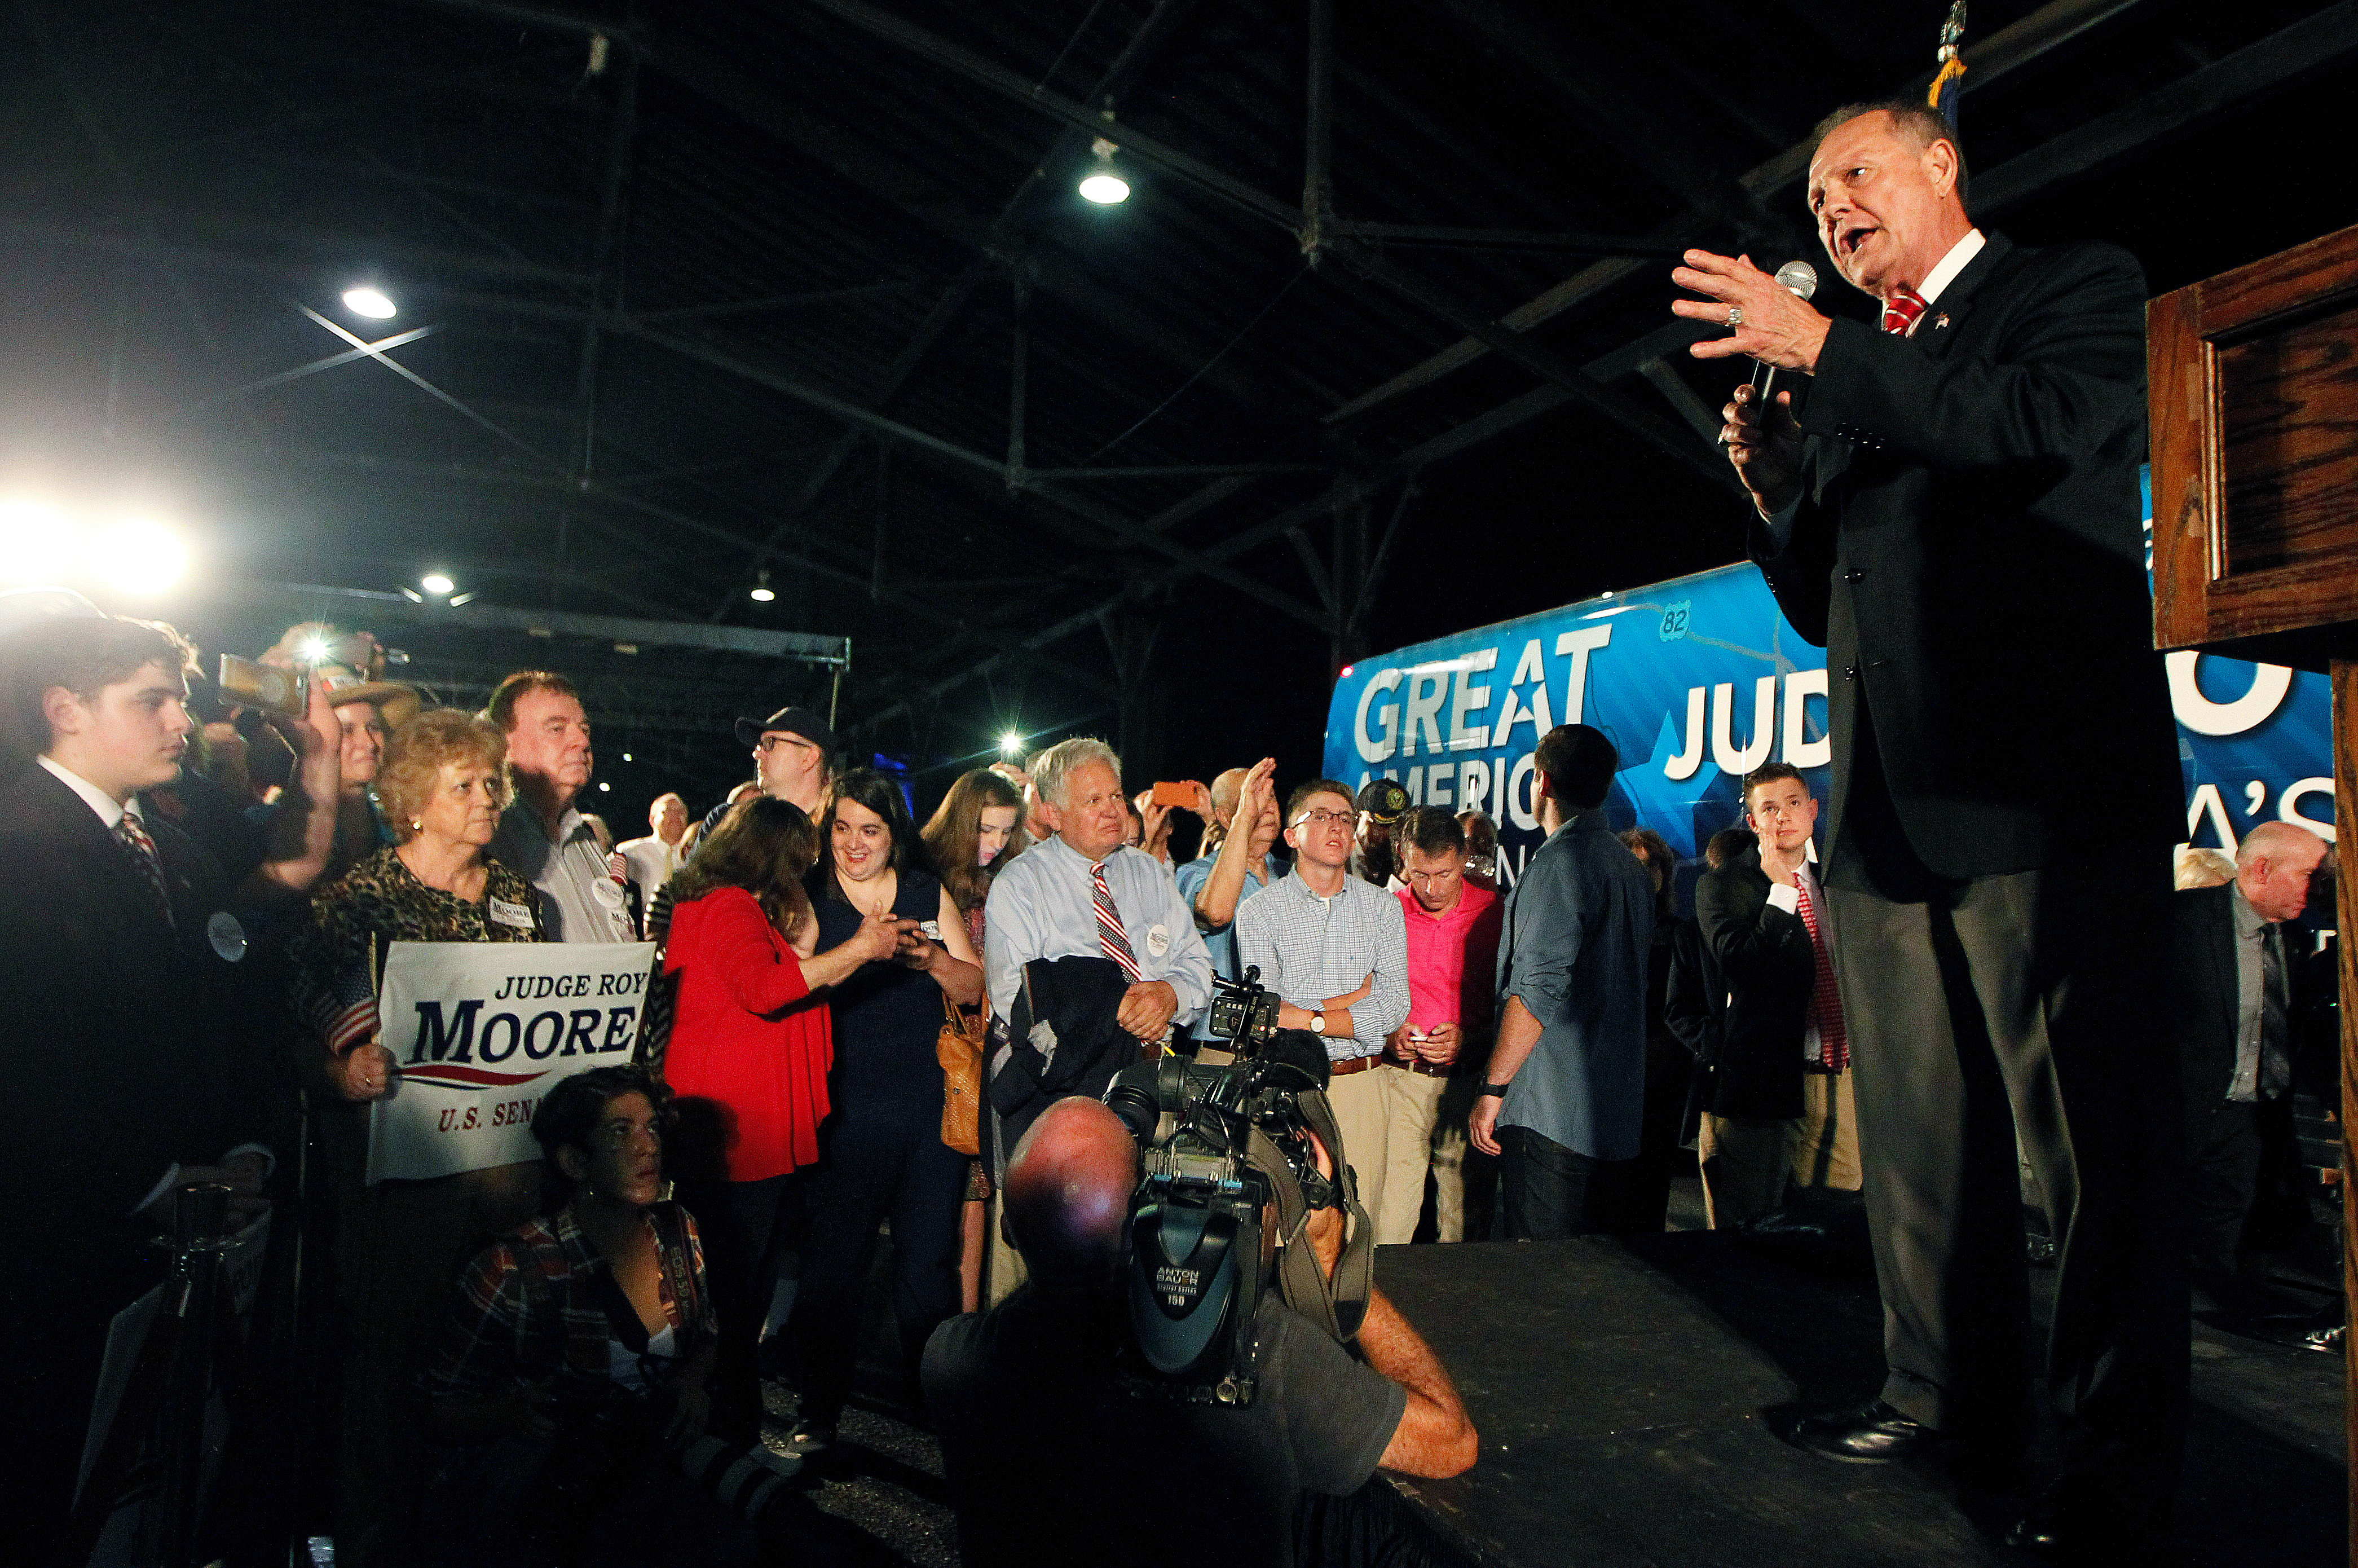 U.S. Senate candidate Judge Roy Moore campaigns at the Historic Union Station Train Shed in Montgomery, Alabama, U.S., September 21, 2017. REUTERS/Tami Chappell - RC190DA22390